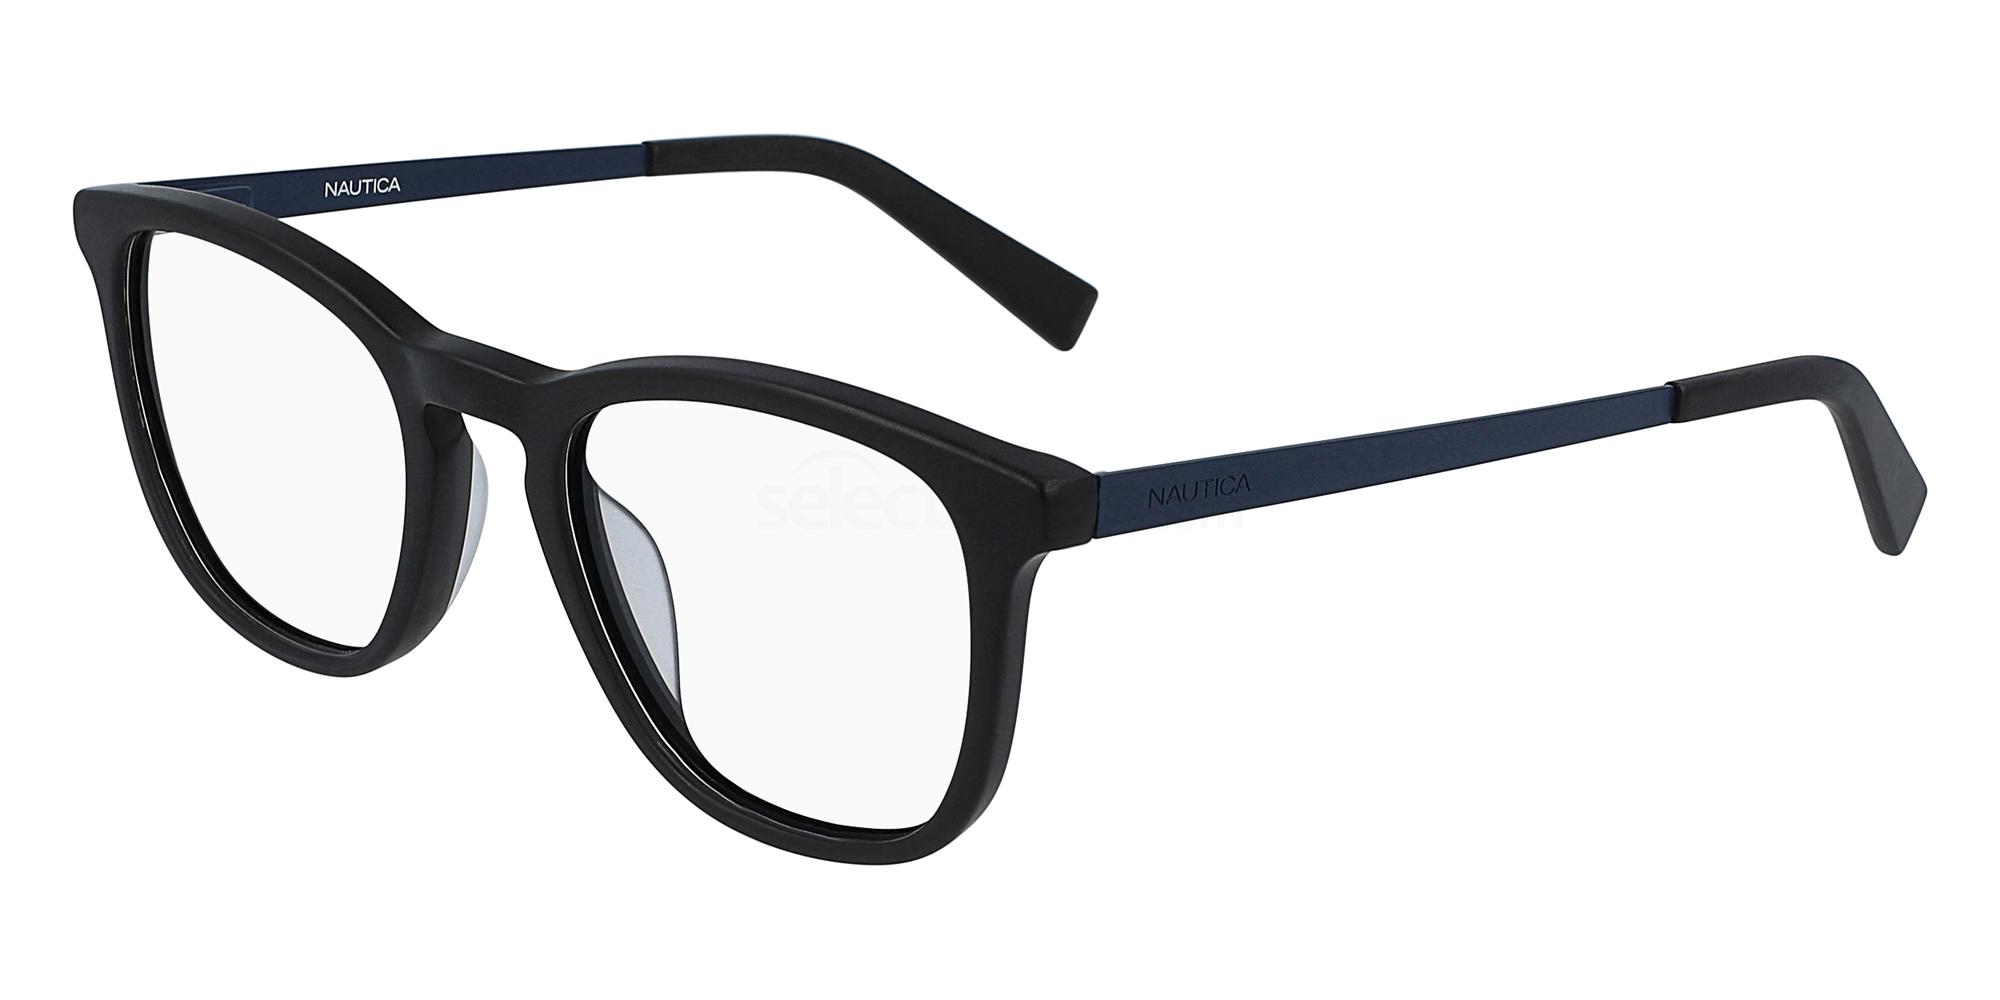 005 N8154 Glasses, Nautica